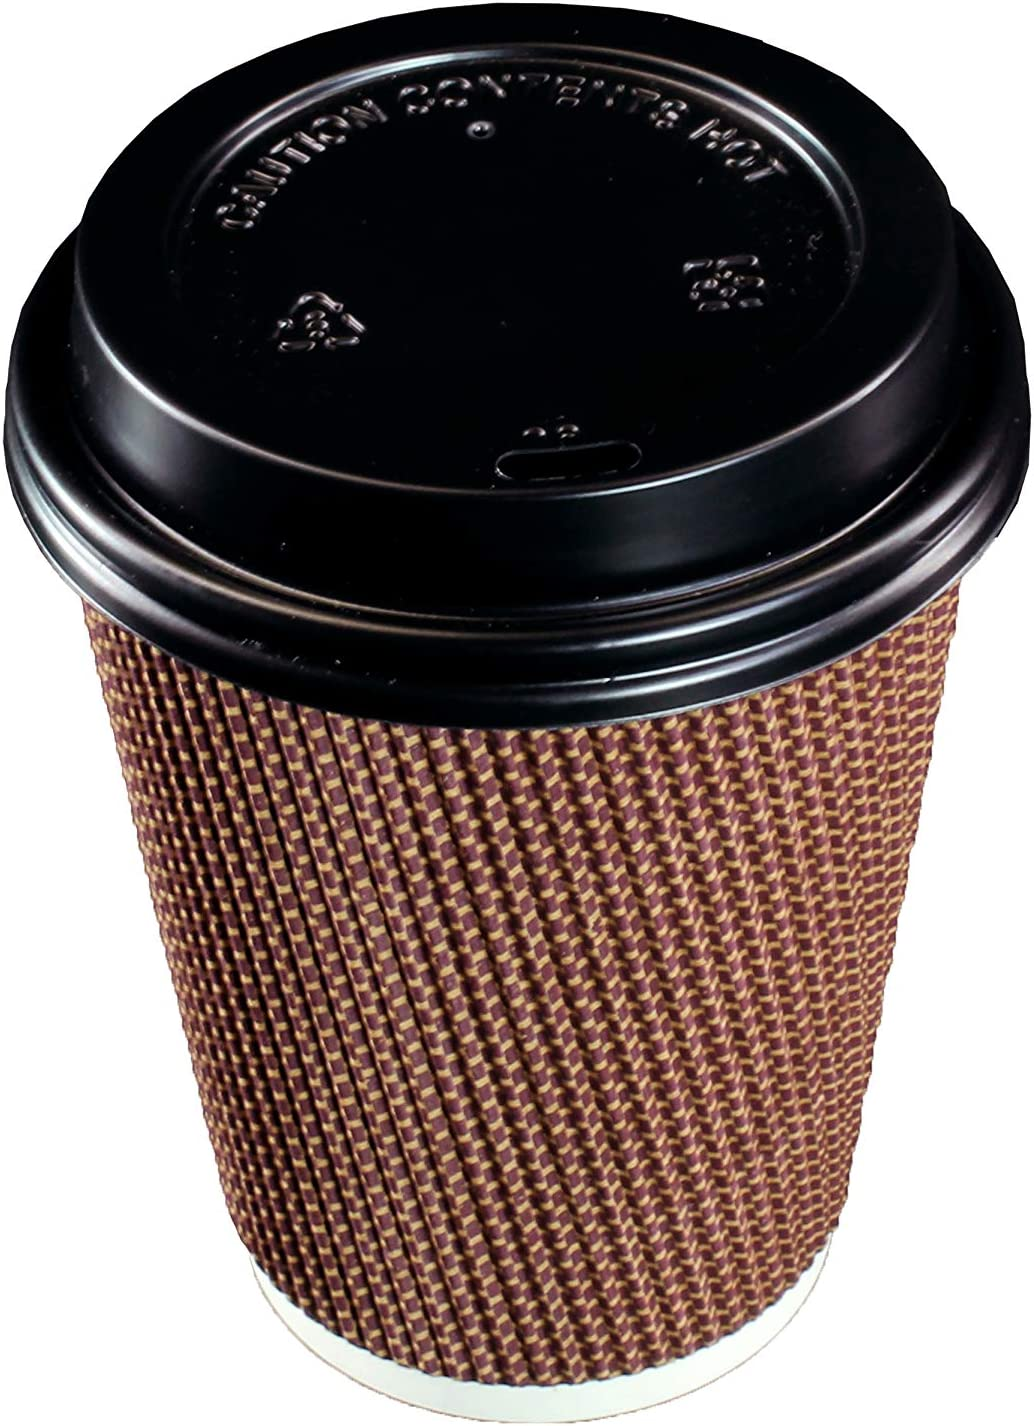 [100 SETS] 12 oz Disposable Double Walled Hot Cups with Lids - No Sleeves needed Premium Insulated Ripple Wall Hot Coffee Tea Chocolate Drinks Perfect Travel To Go Paper Cup and lid Brown Geometric